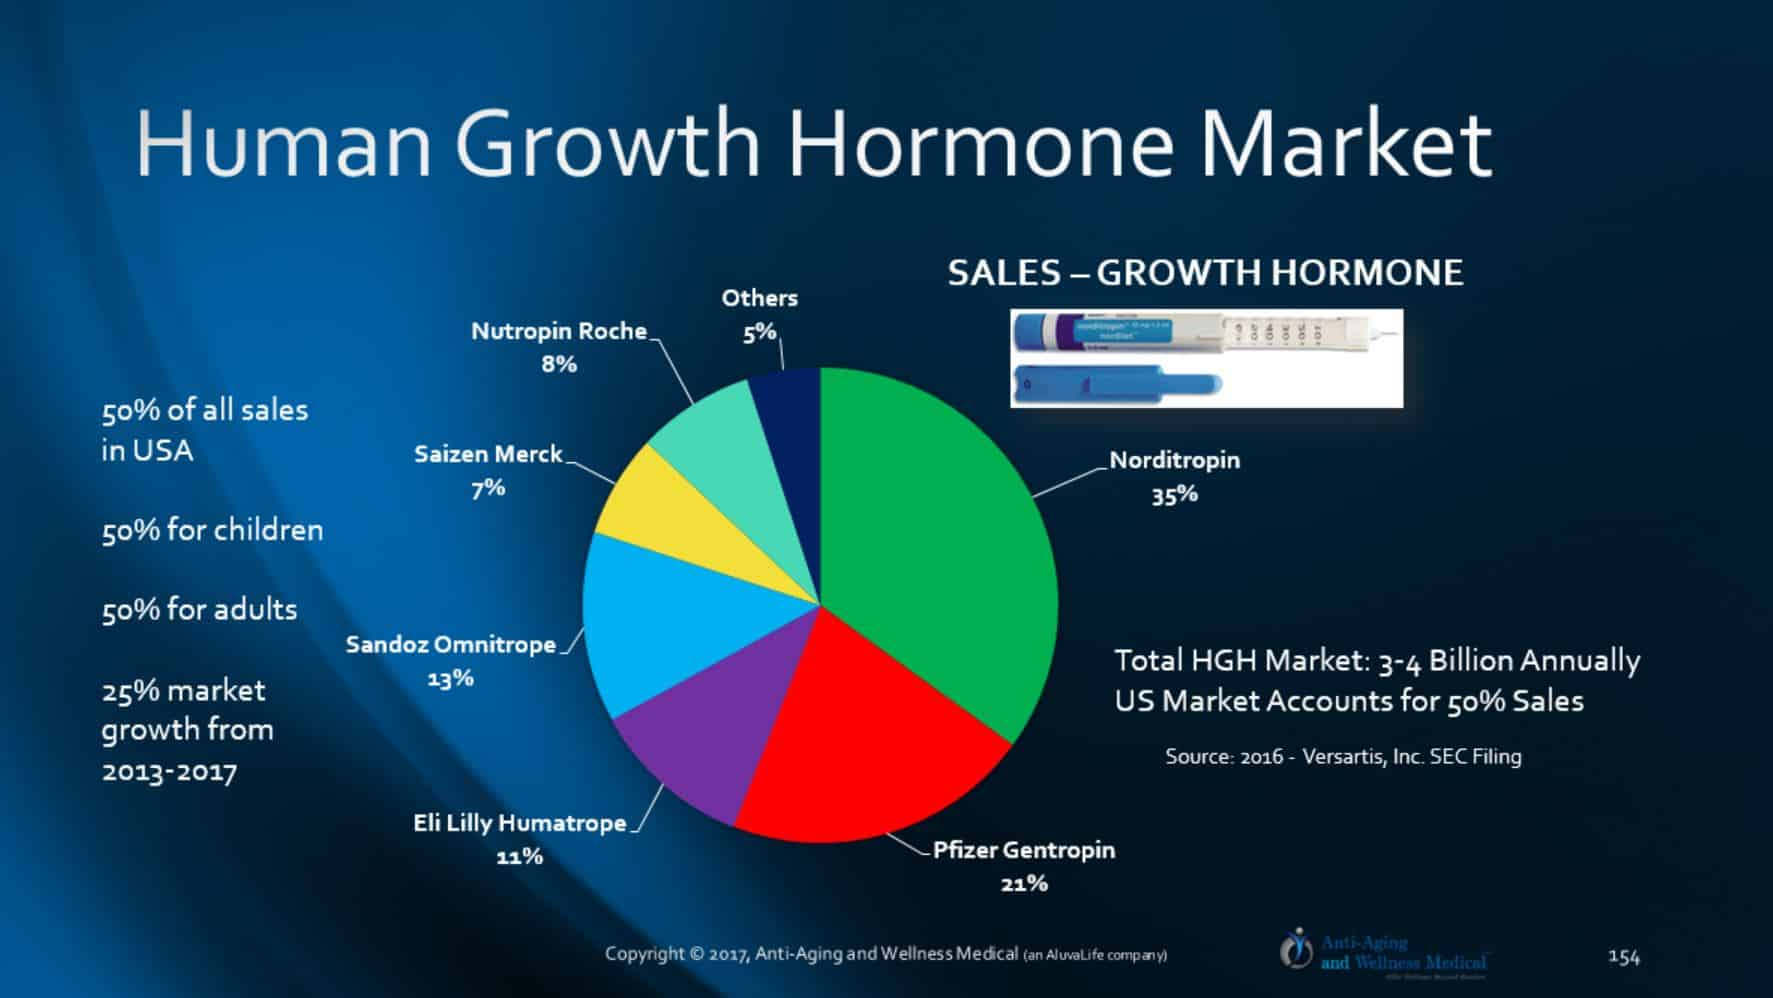 Increase HGH | Ipamorelin | Peter Thiel Growth Hormone Bloomberg TV